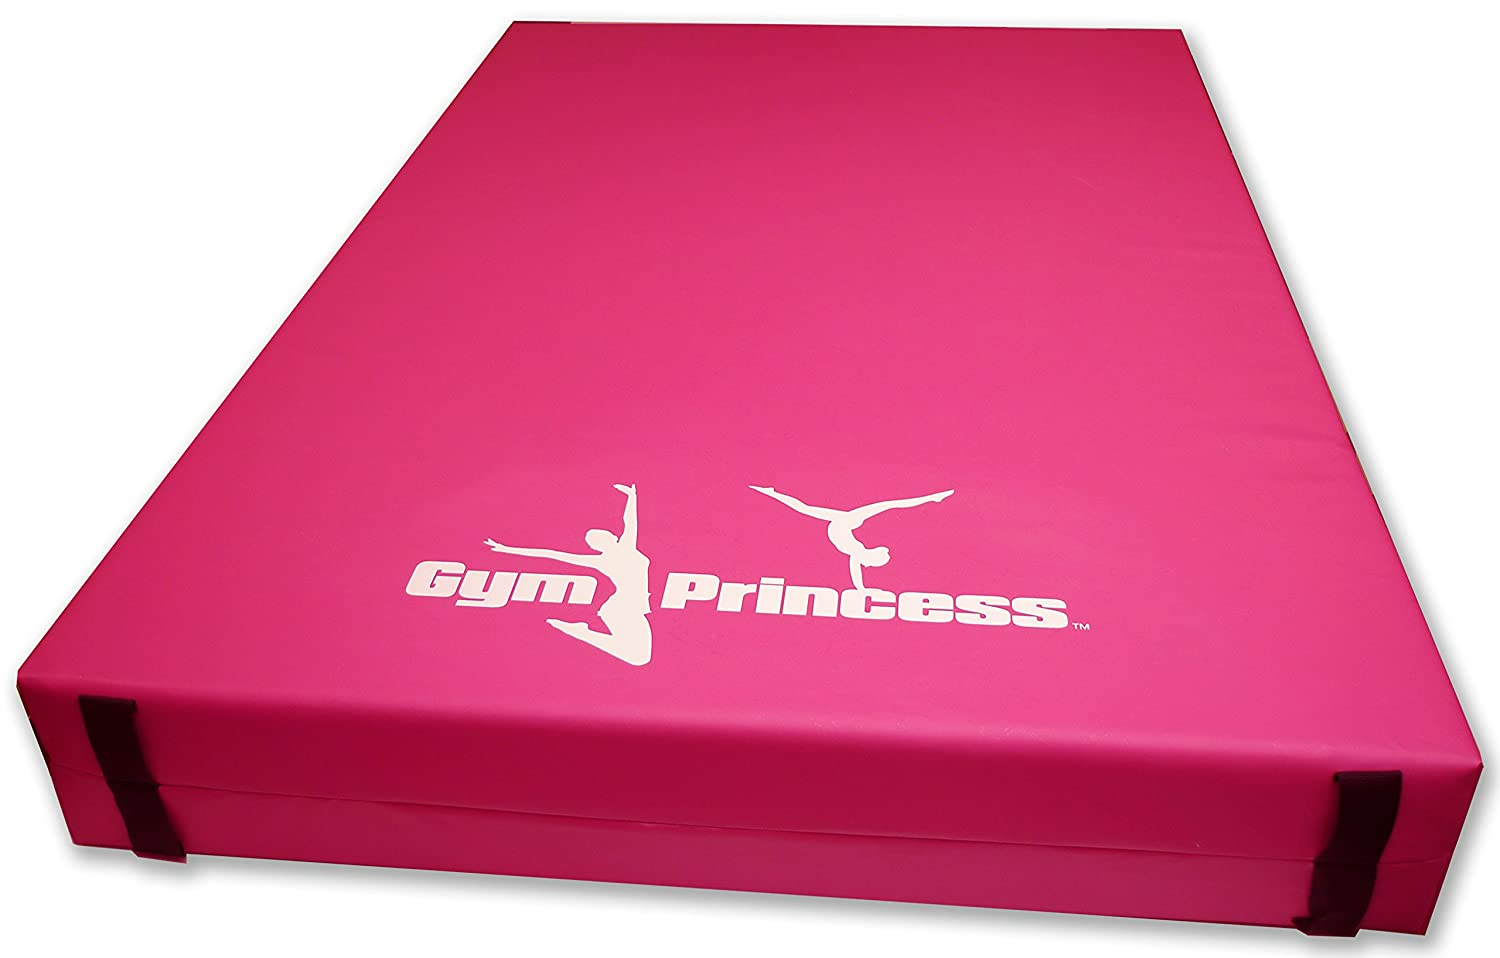 Gym Princess Implay Multi-Use Gymnastics, Exercise & Crash Mats - 610gsm PVC/High Density Foam - Choice of size Implay® IMP-GYMP-PNK